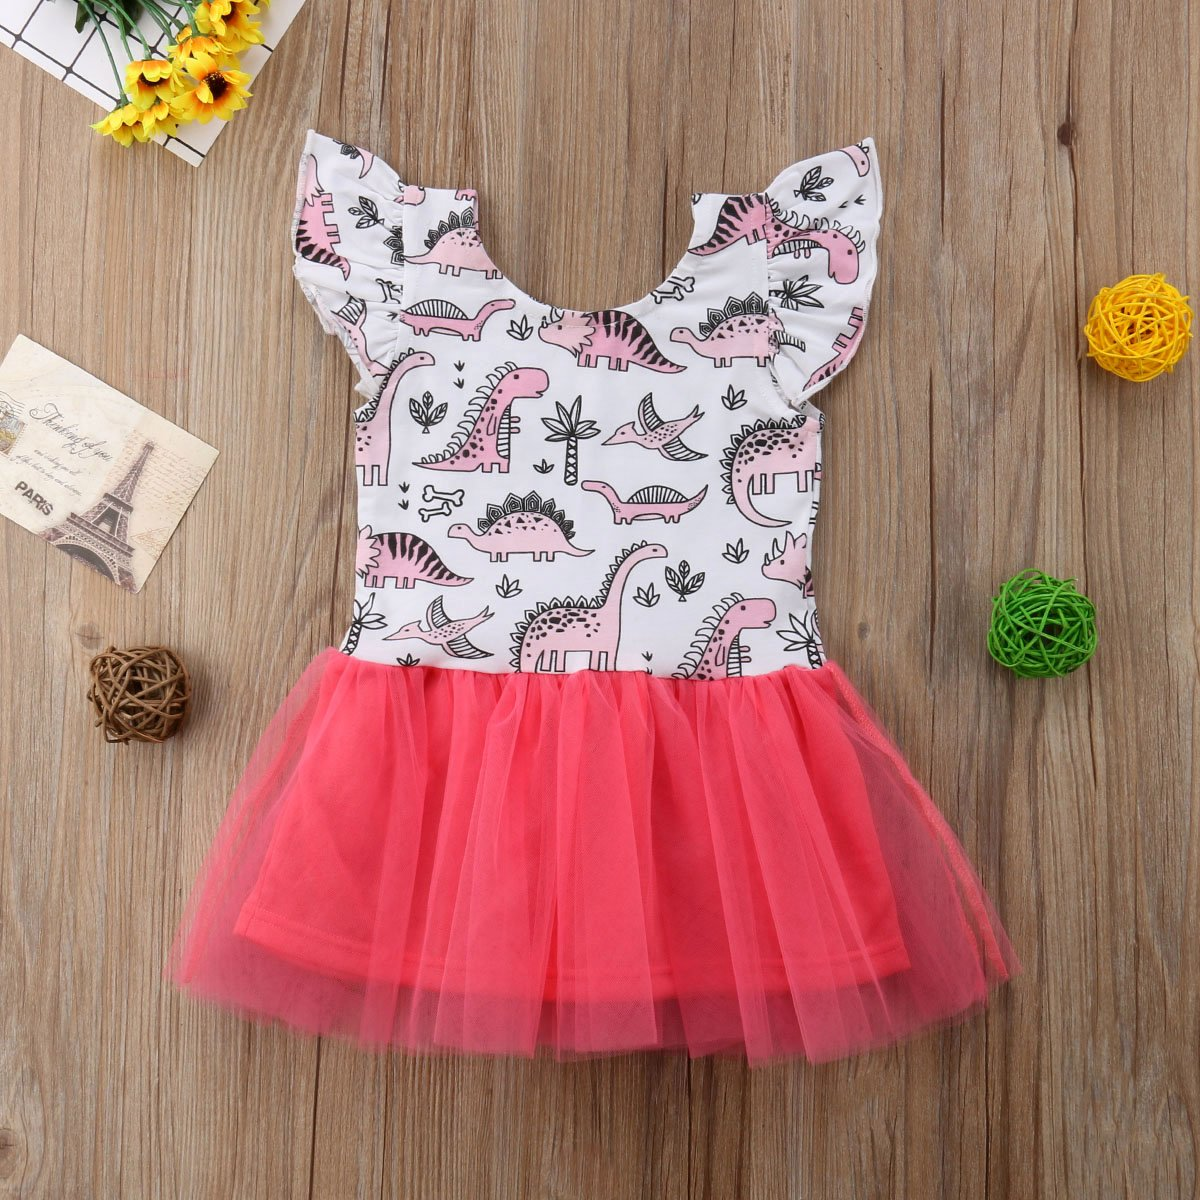 Toddler Baby Girls Dresses Dinosaur Tops Lace Skirt Casual Dresses Party Dresses Birthday Dresses Clothes